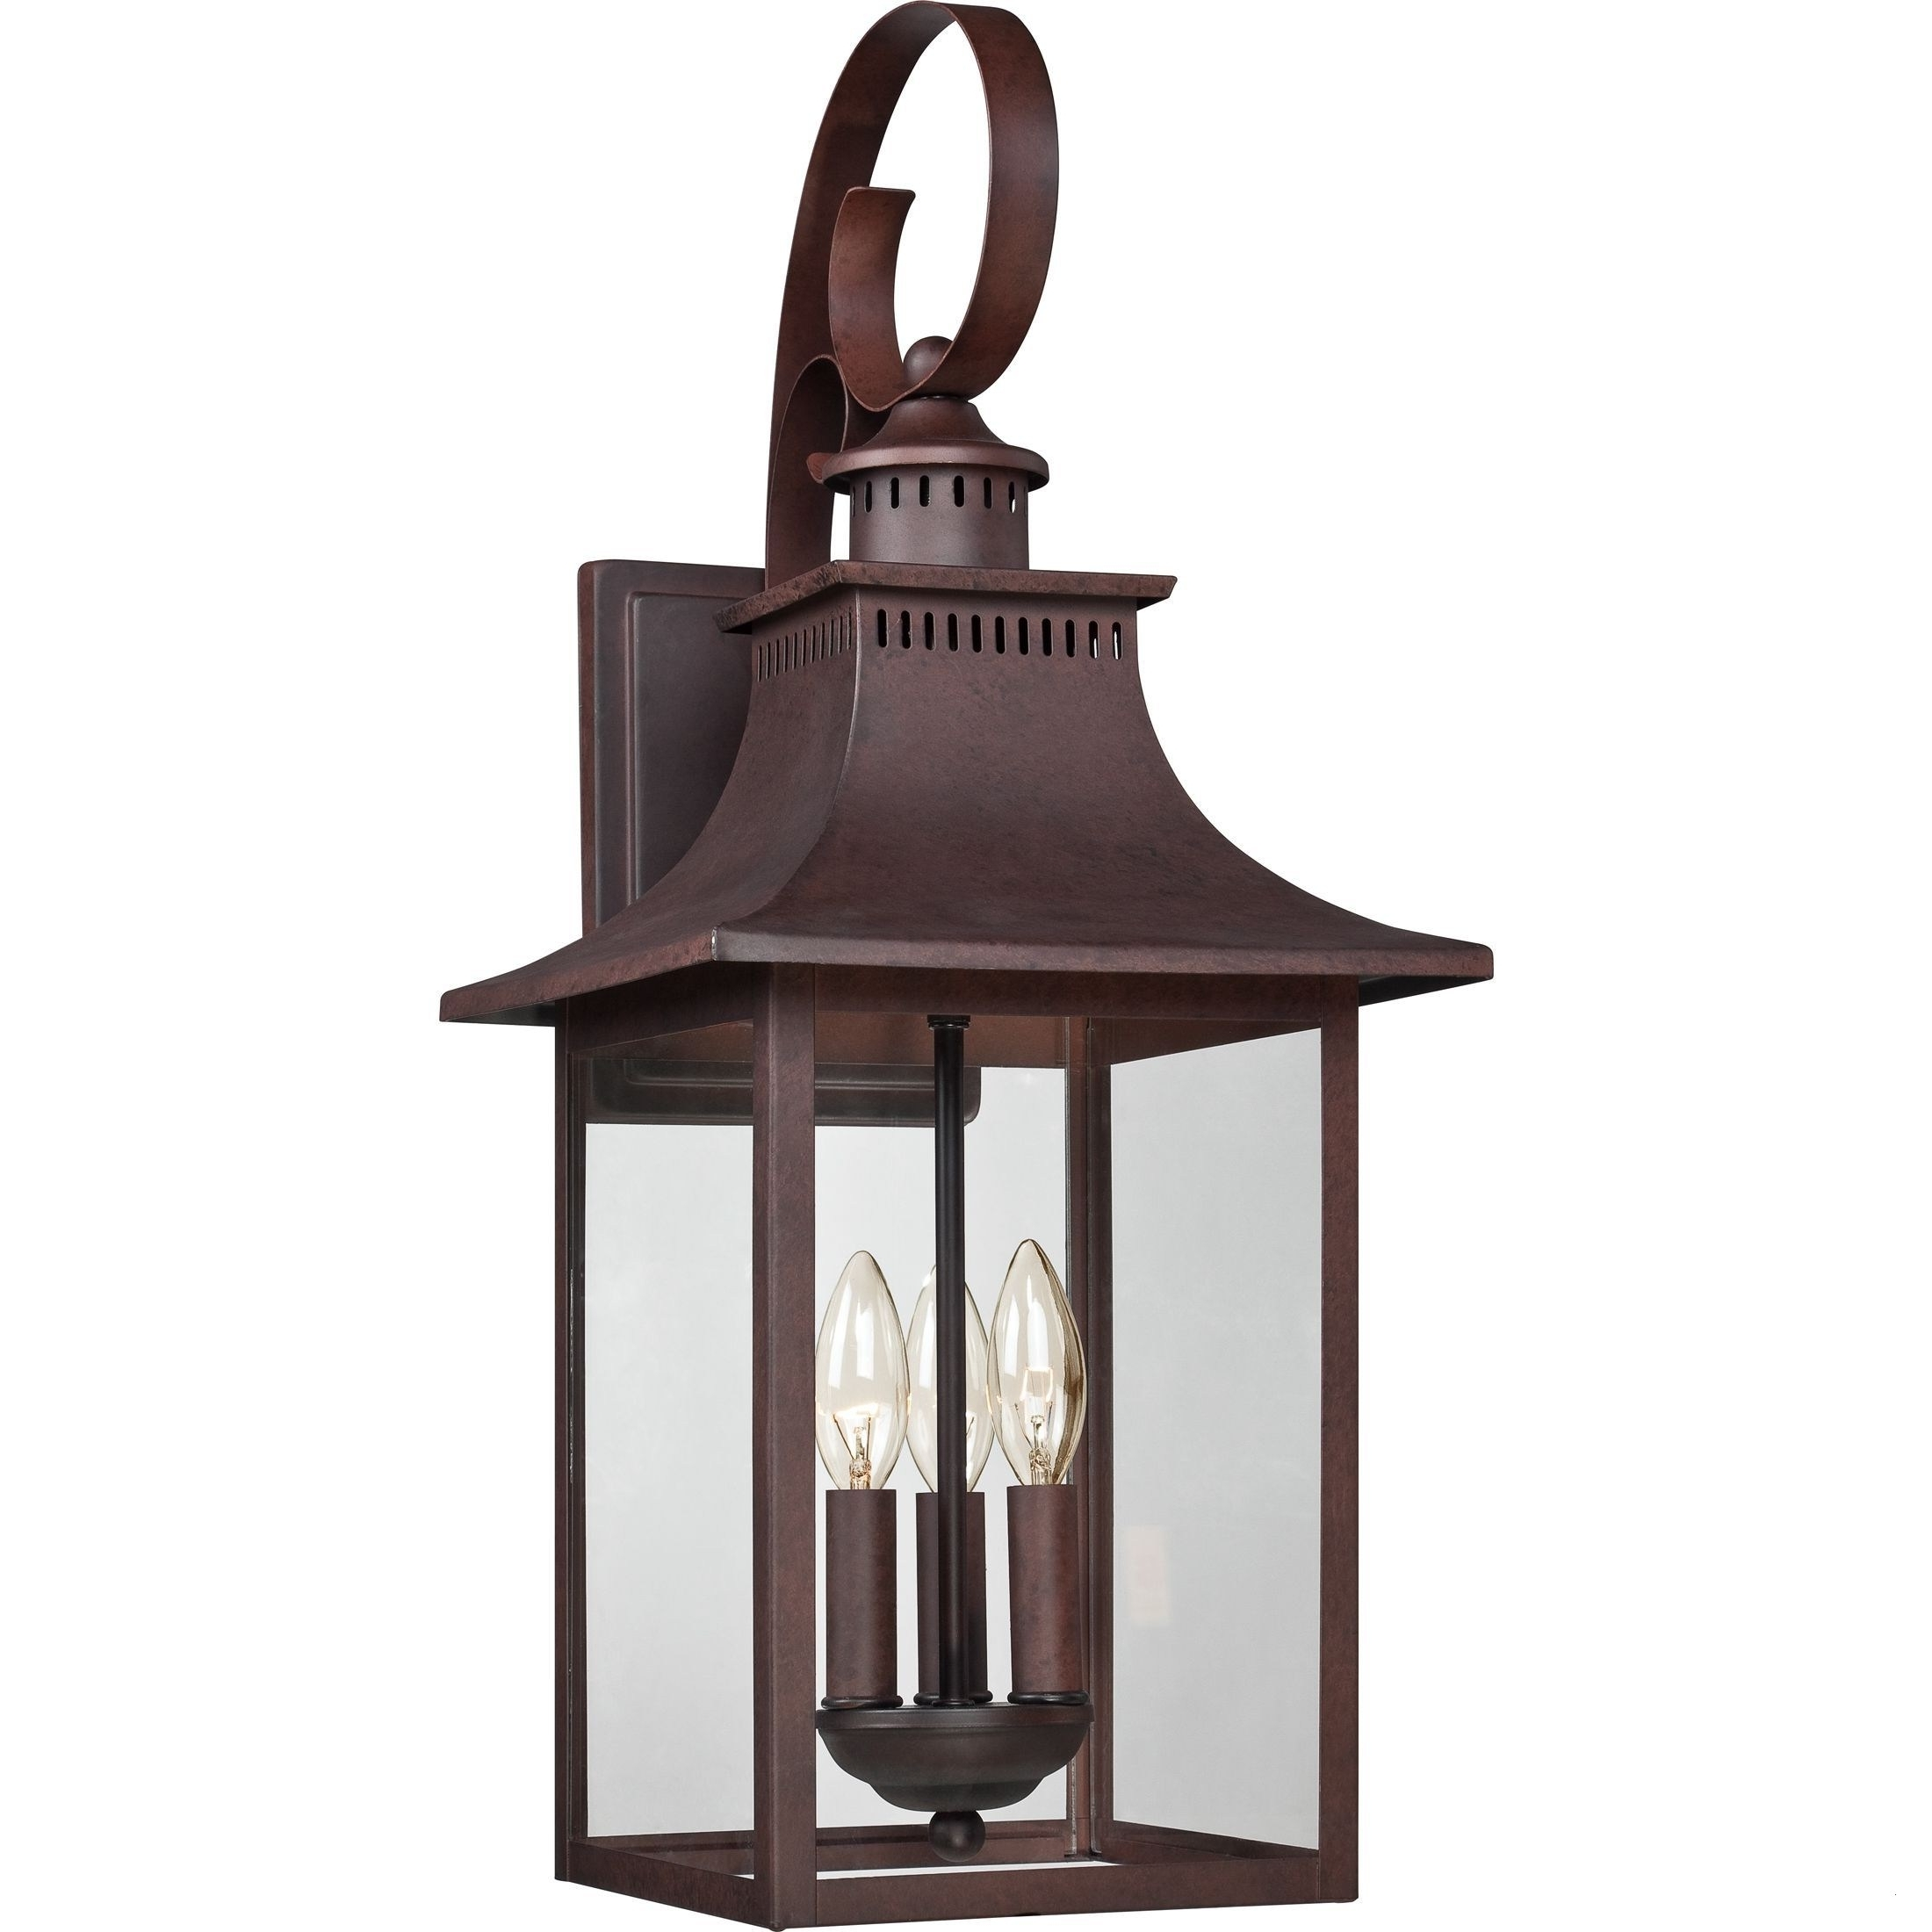 Quoizel Outdoor Lights Lovely Quoizel Chancellor 3 Light Copper In Most Up To Date Quoizel Outdoor Lanterns (Gallery 19 of 20)